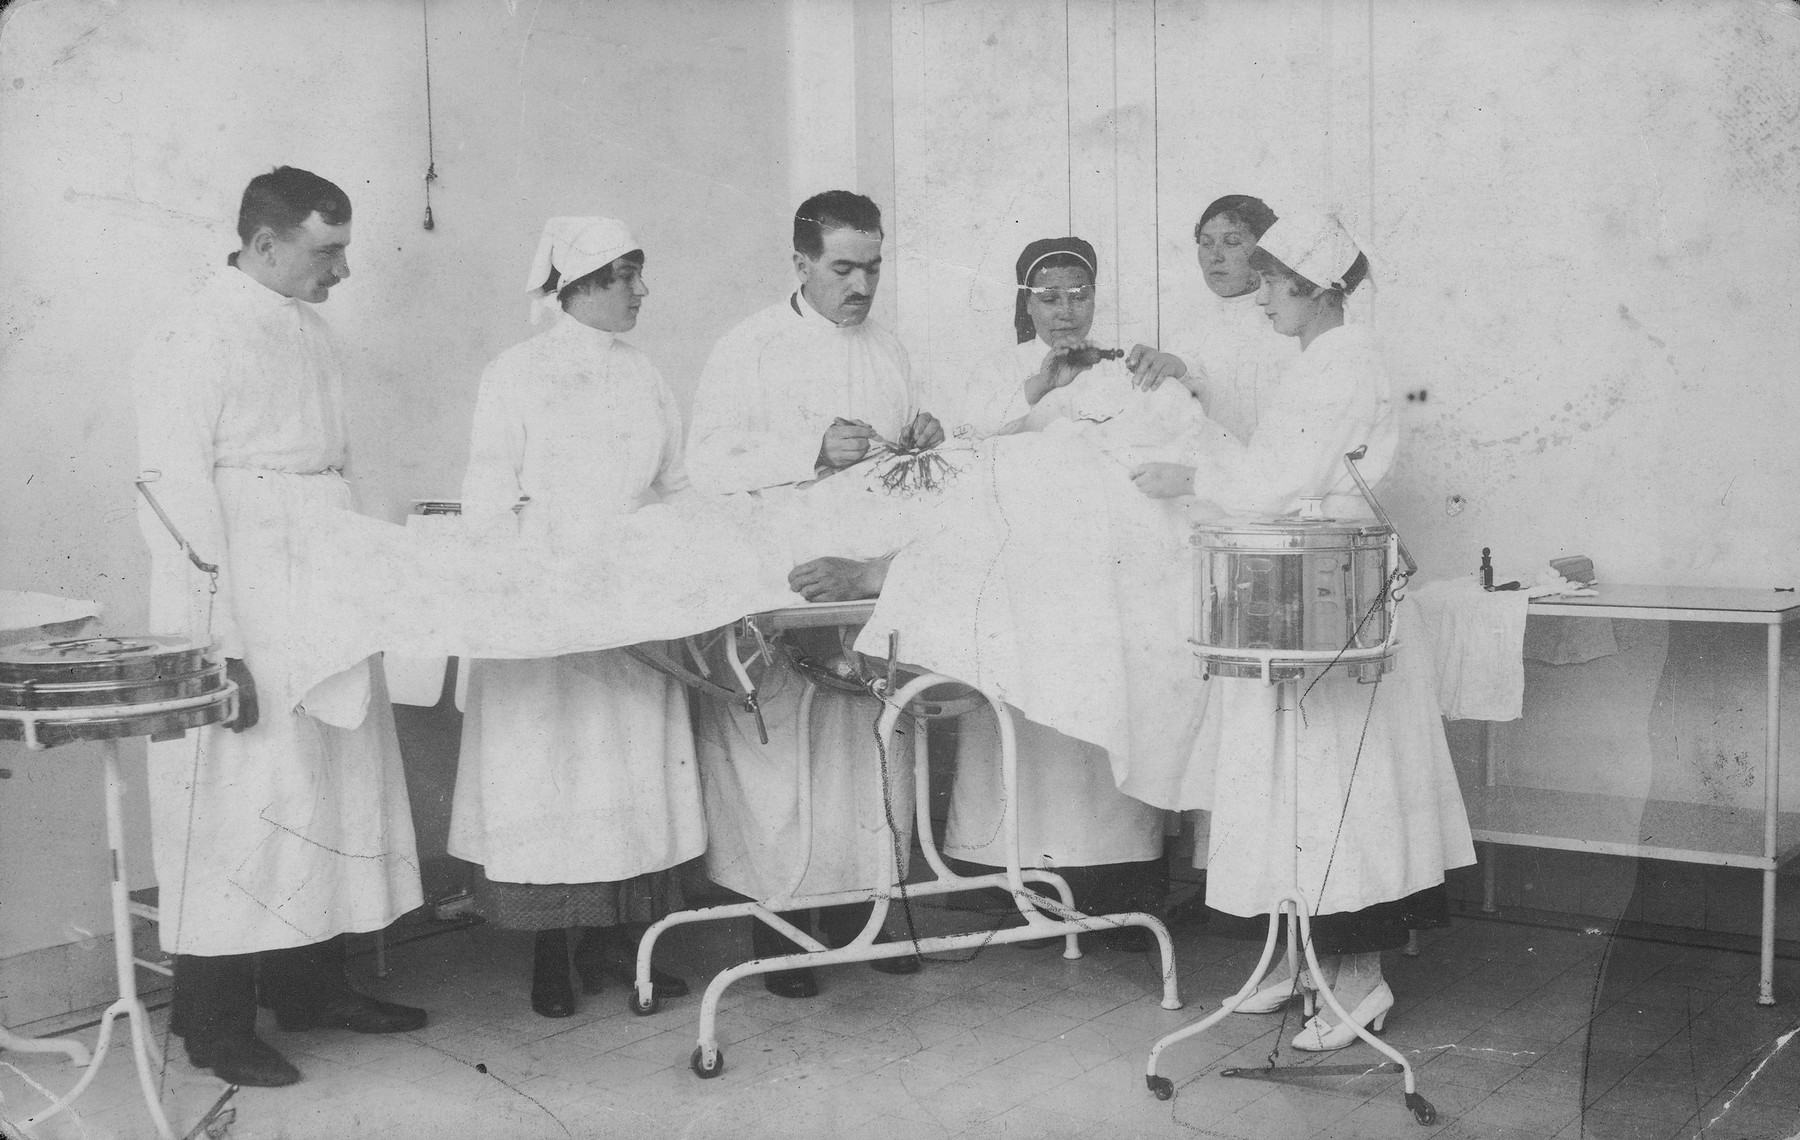 Maniefa Willenberg (pictured second from left) assists during a surgical operation.